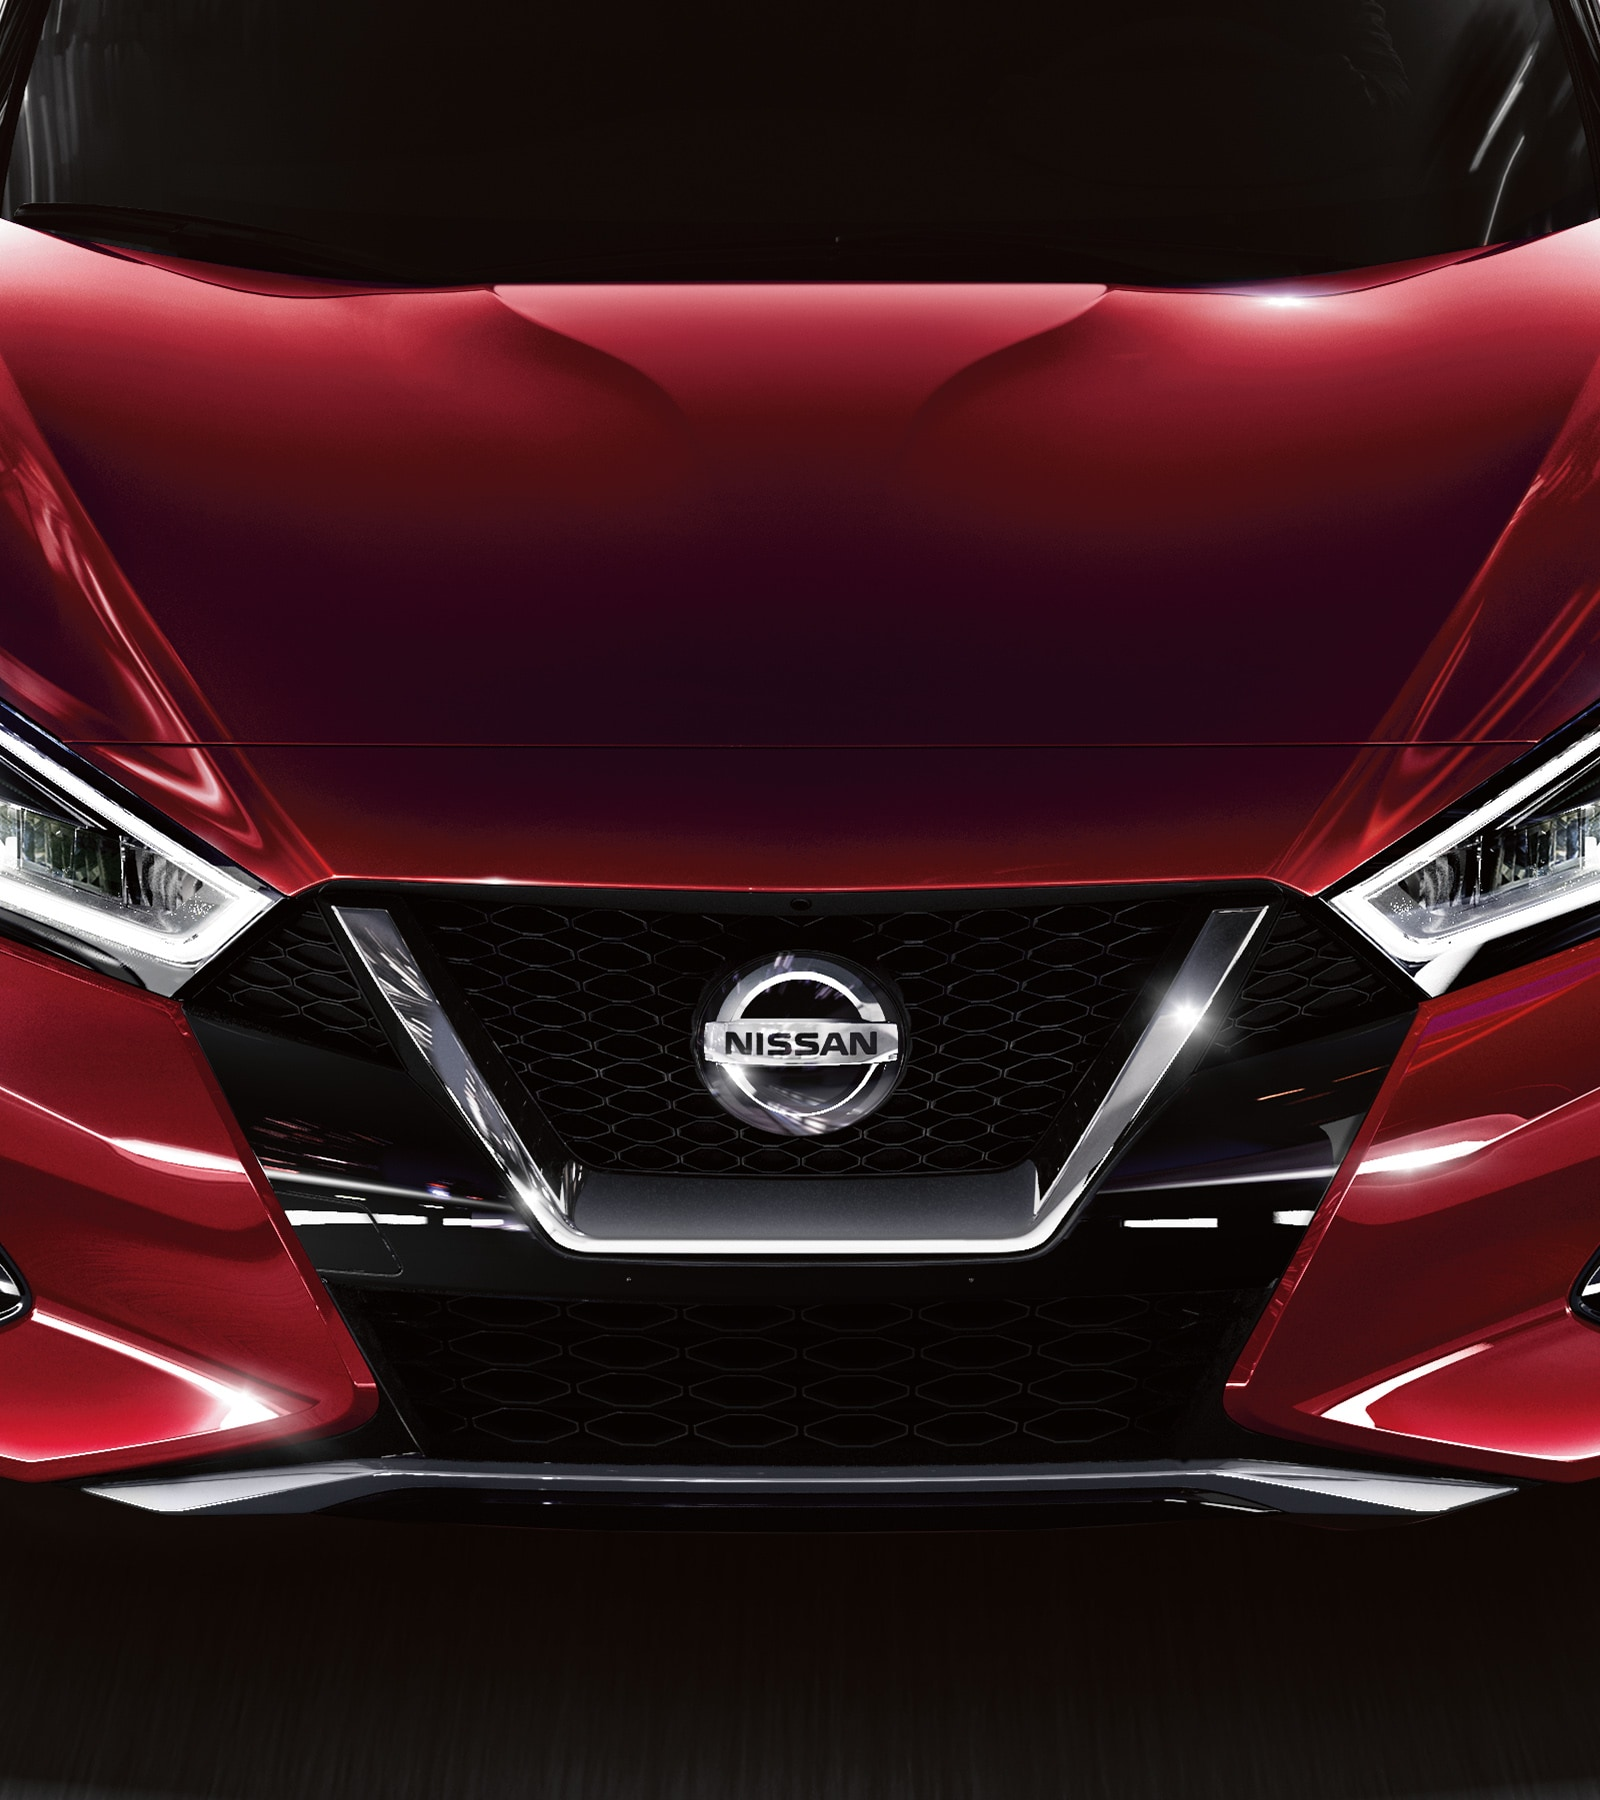 hight resolution of nissan maxima exterior finish in red